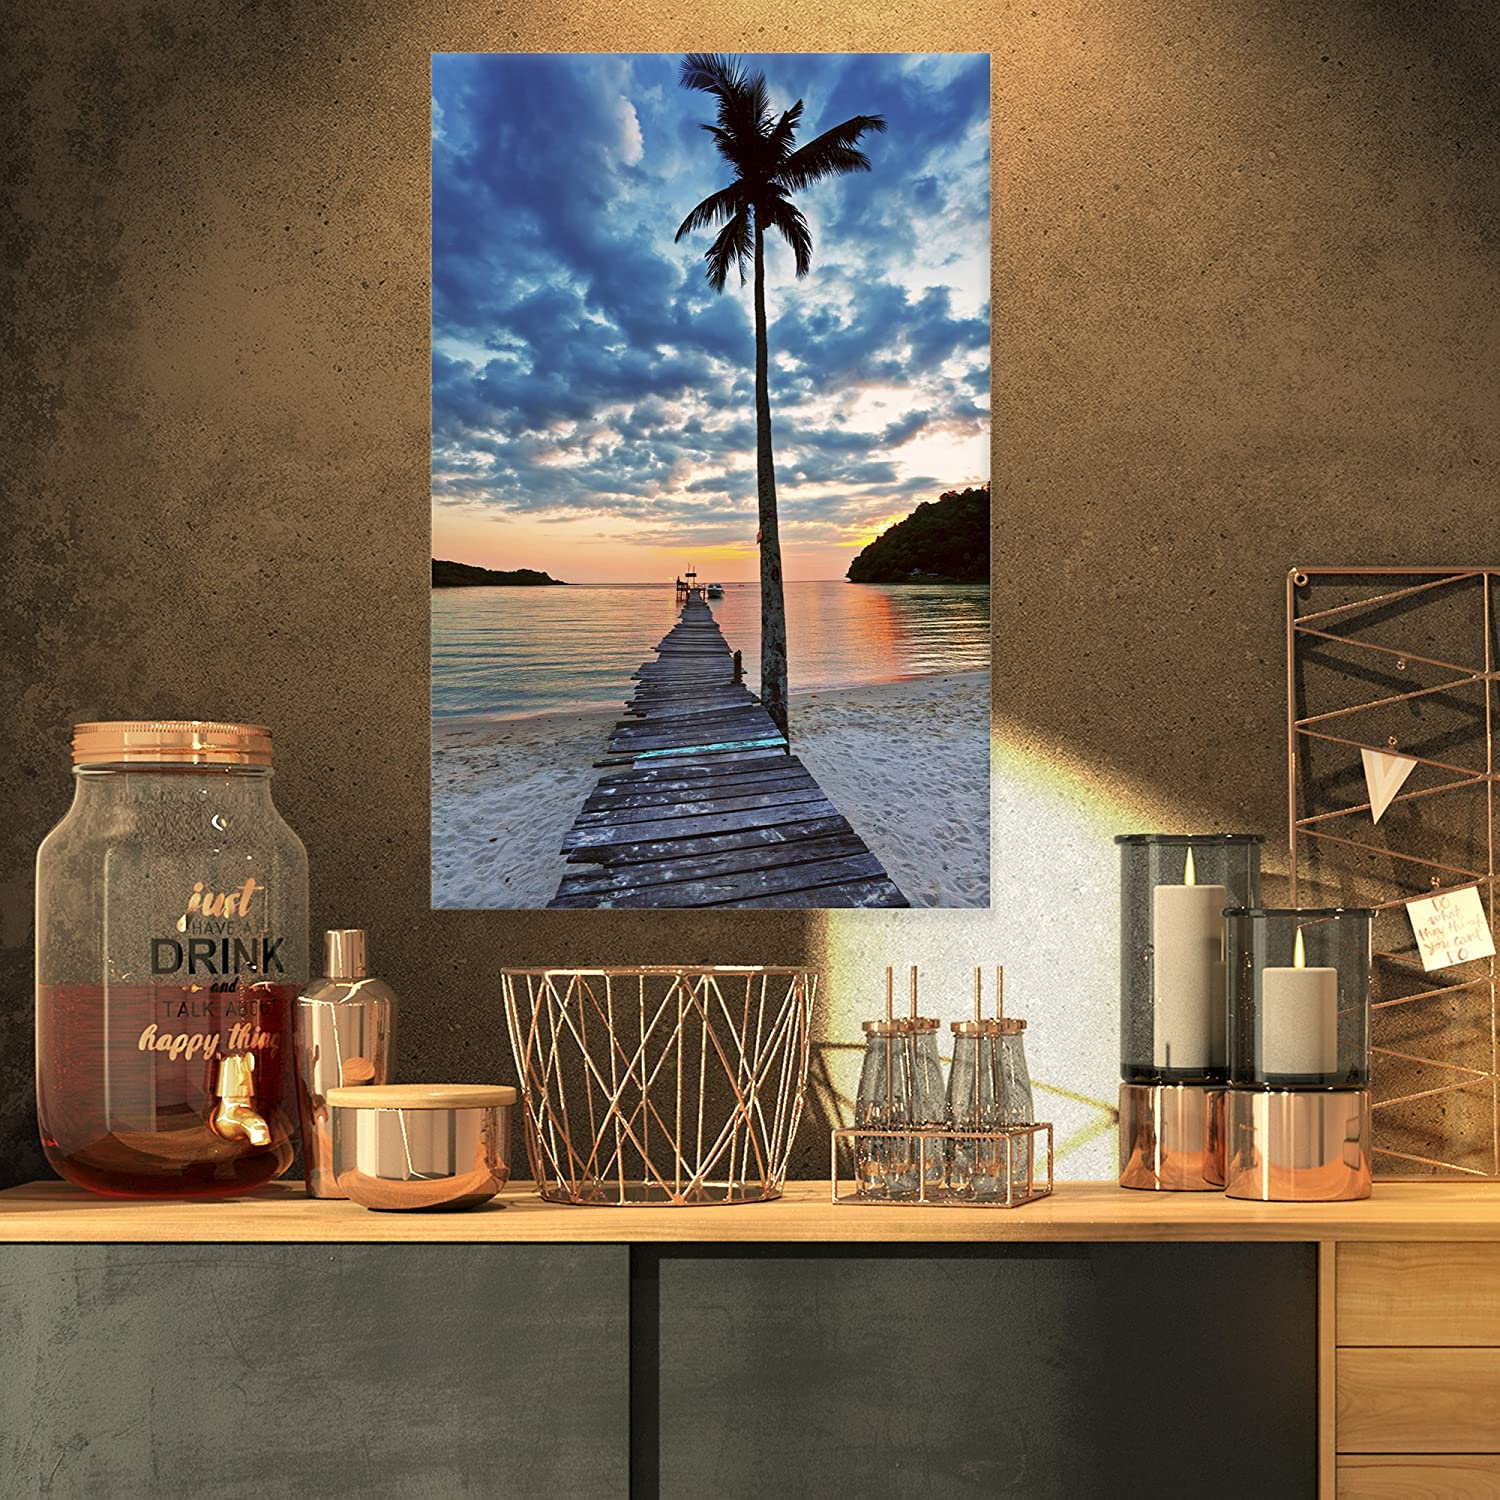 Designart PT8959-16-32 Wooden Pier and Palm Tree-Seashore Photo Canvas Art Print-16x32, 16x32 bluee